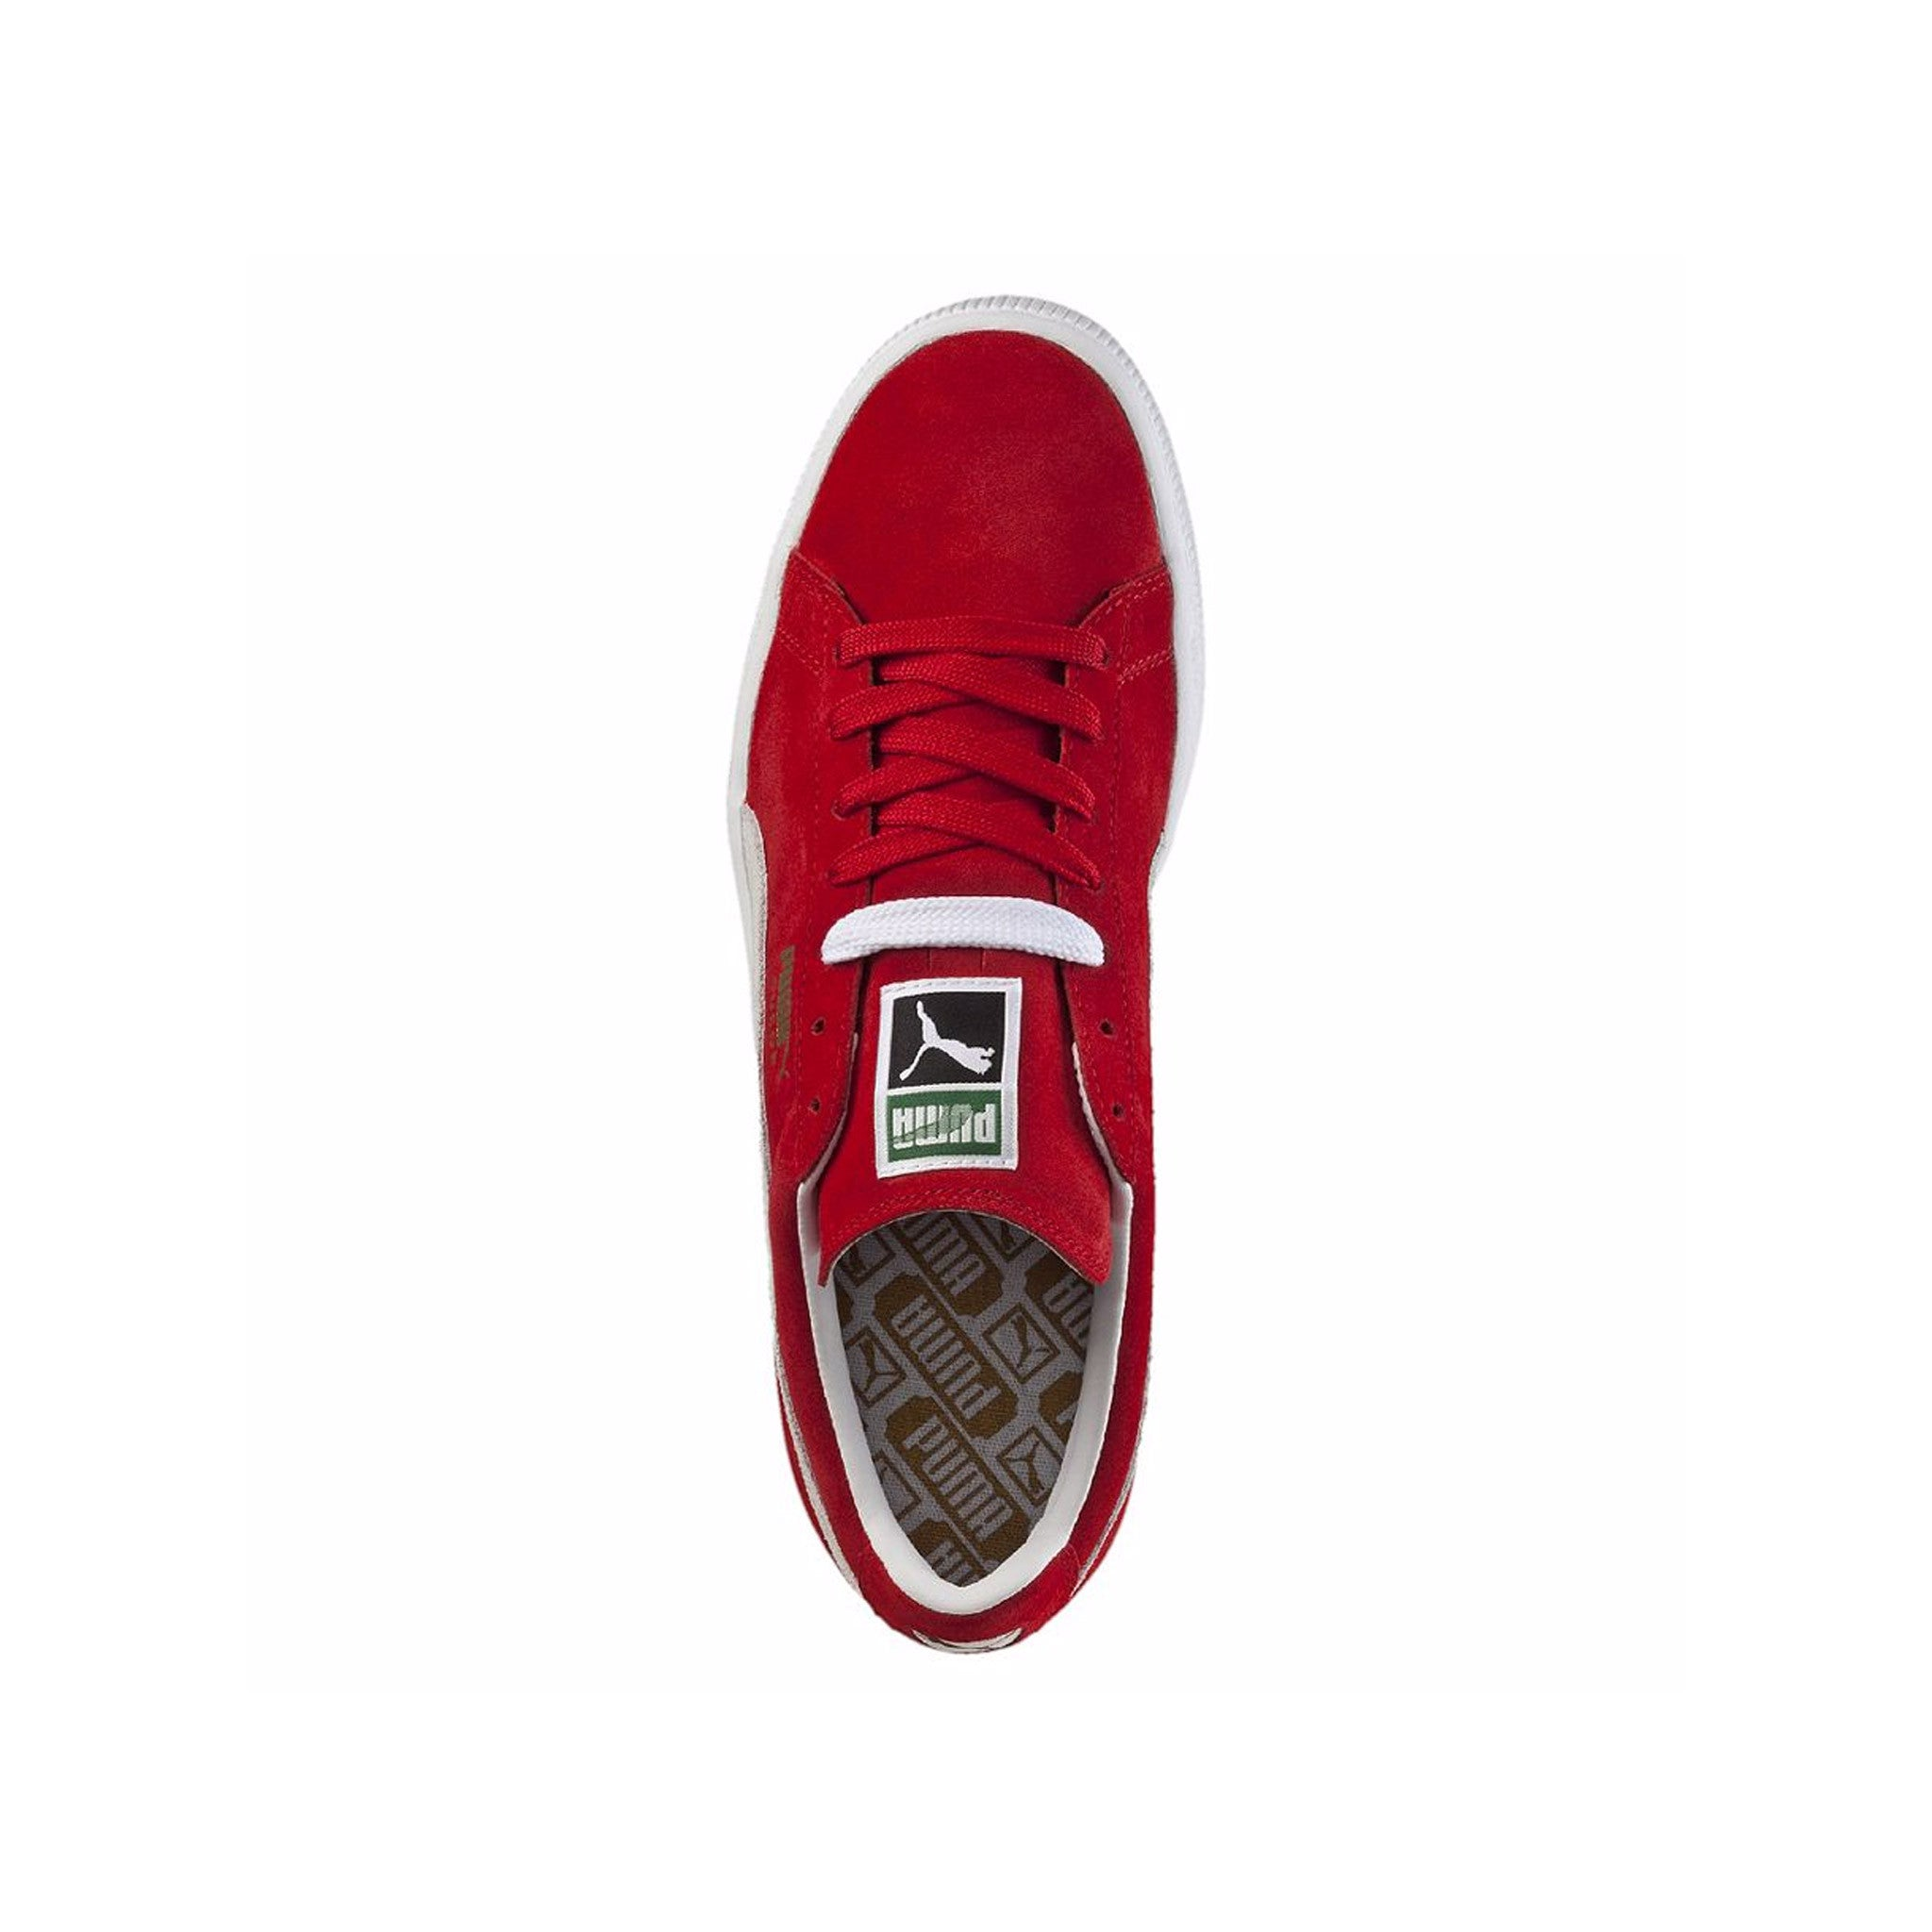 Suede Classic Puma Sneakers Red Top View